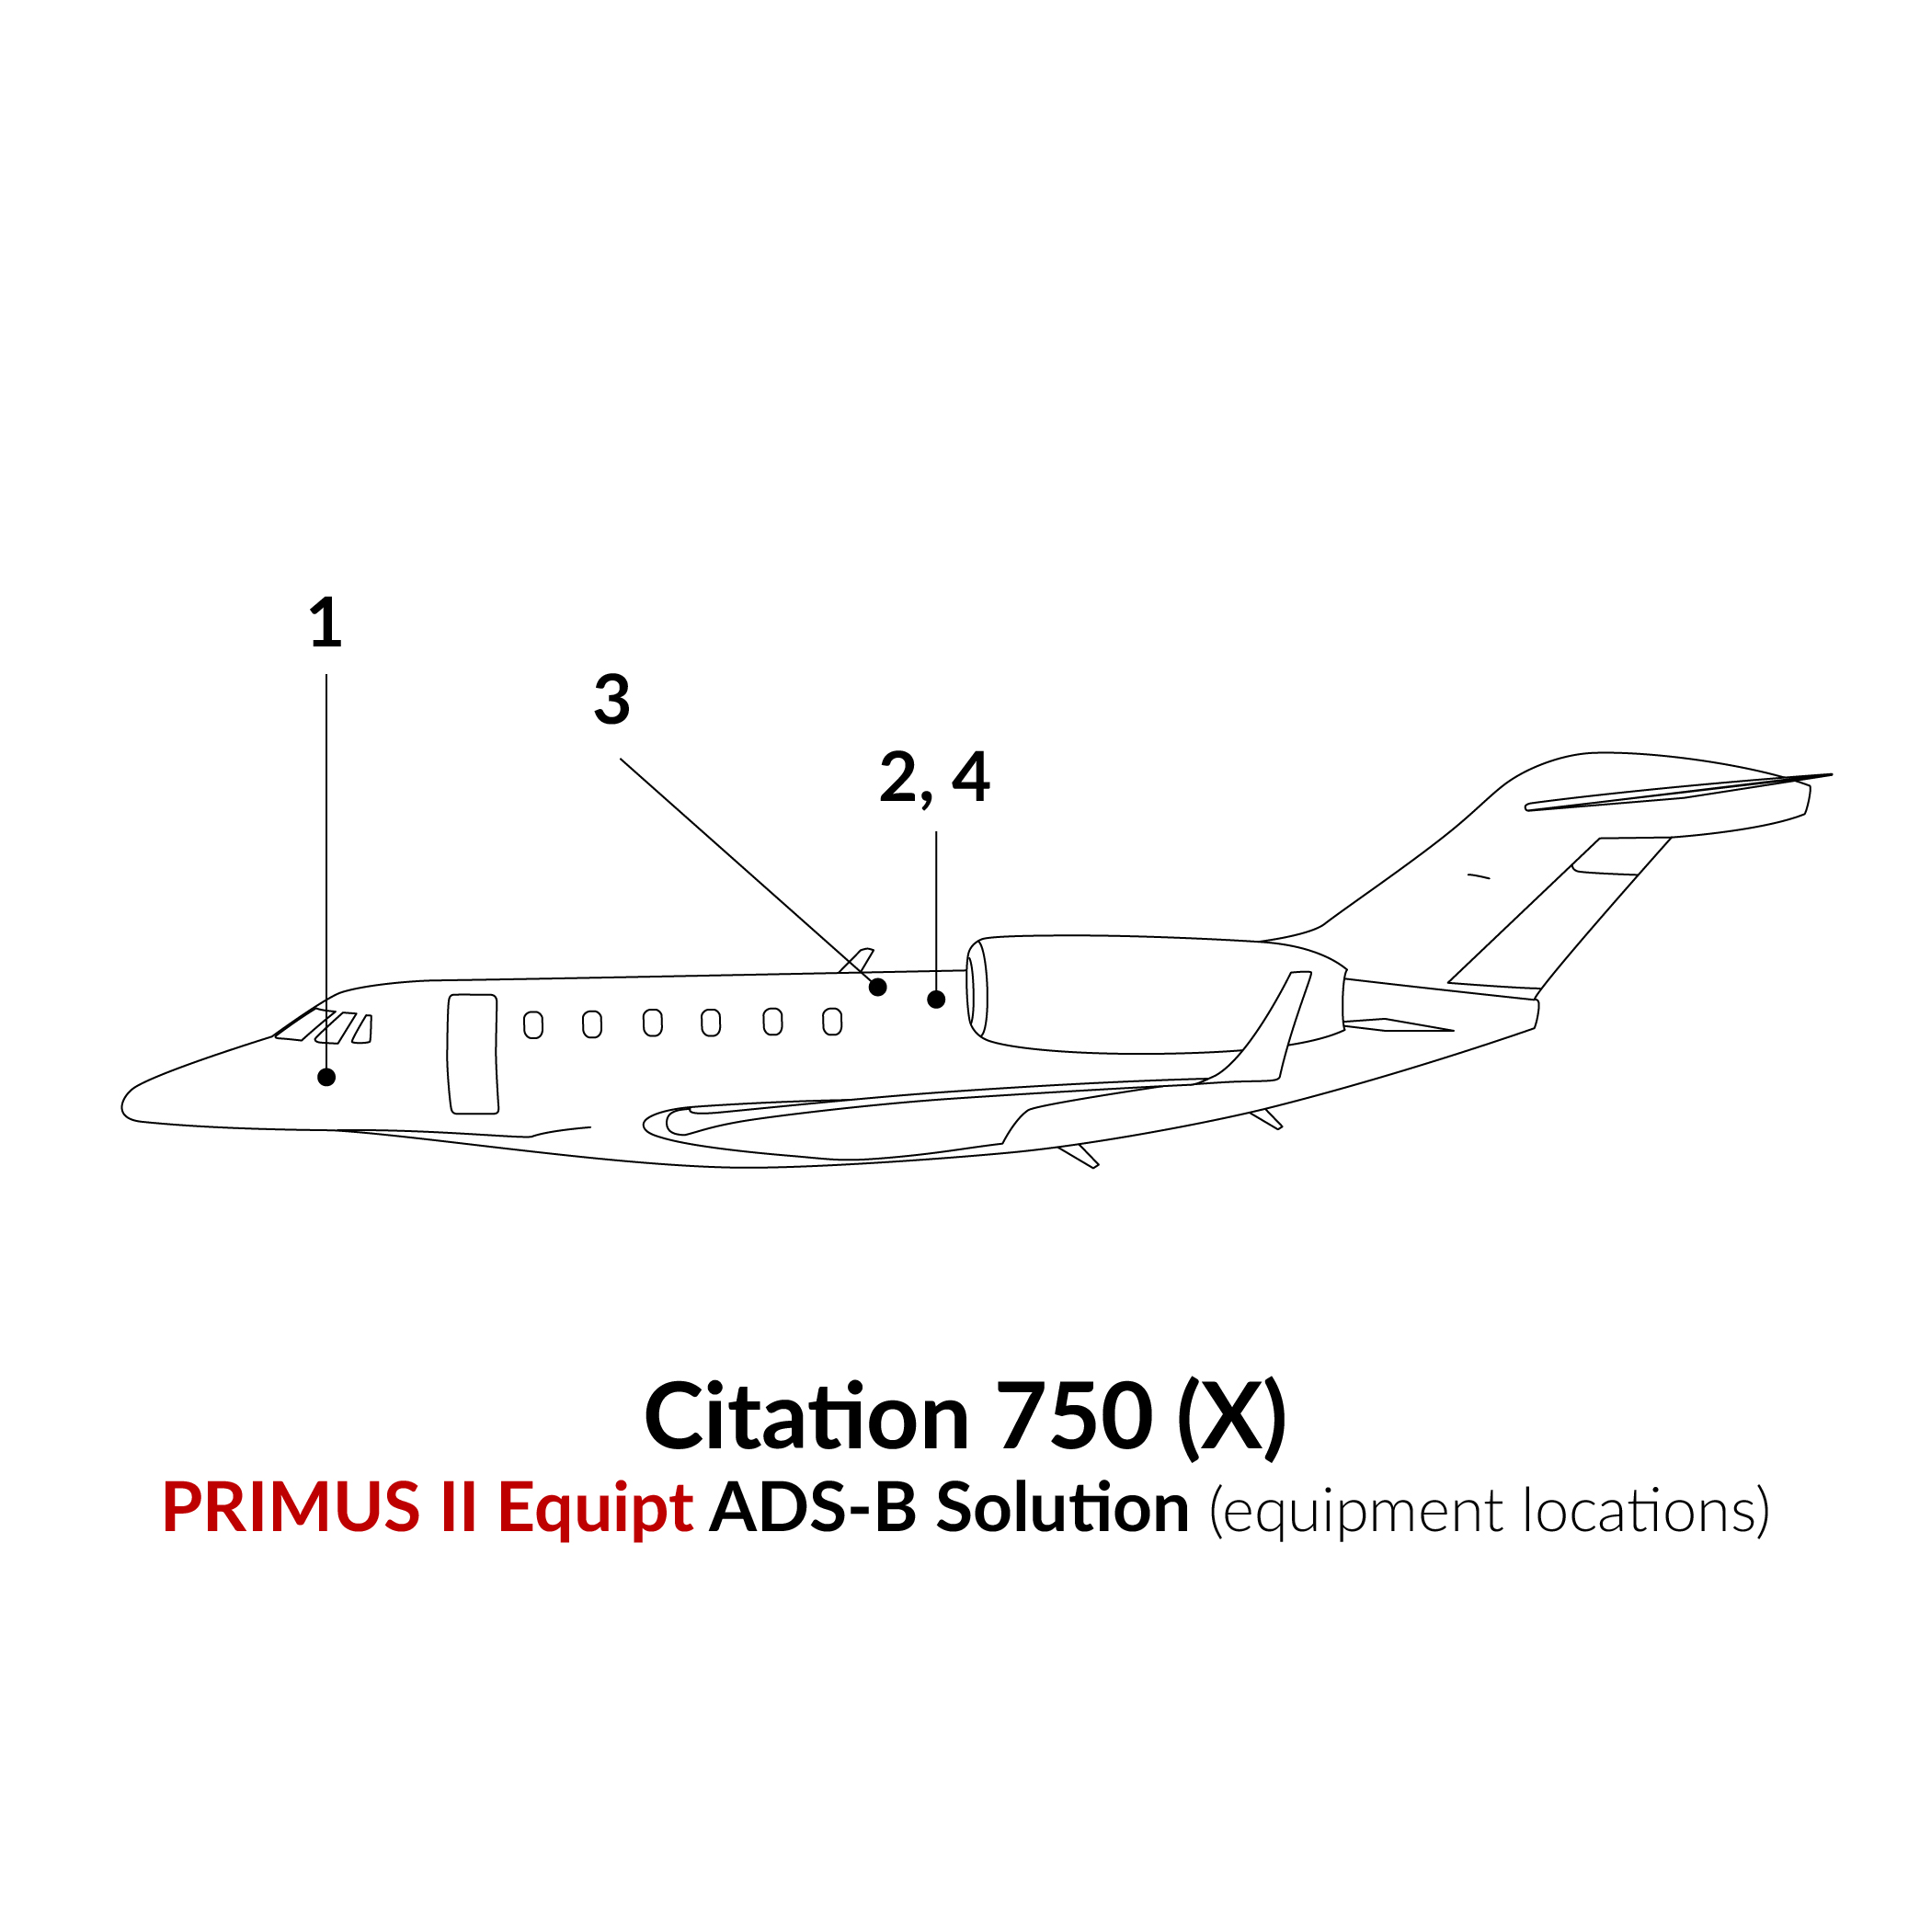 Citation 750_Honeywell Primus II.jpg